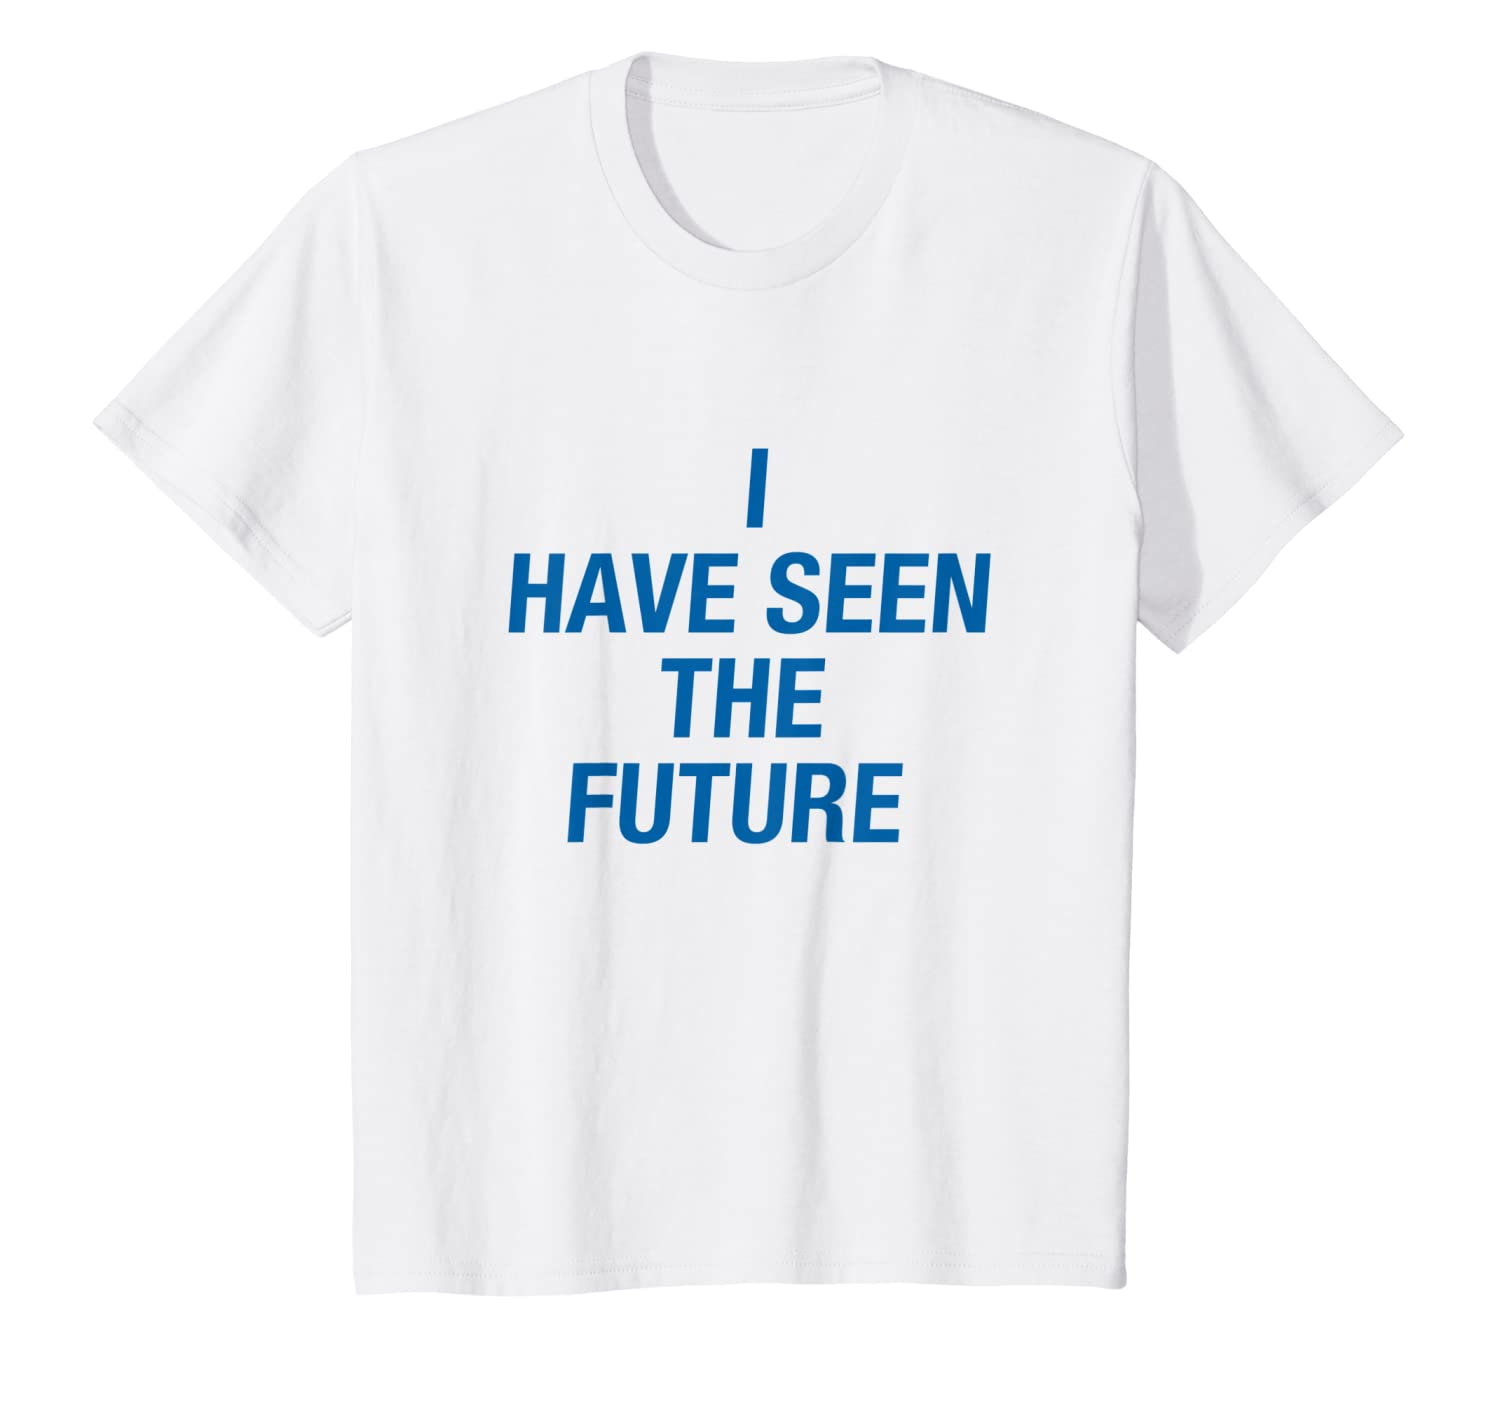 400ccb77 Amazon.com: I Have Seen The Future T-shirt: Clothing